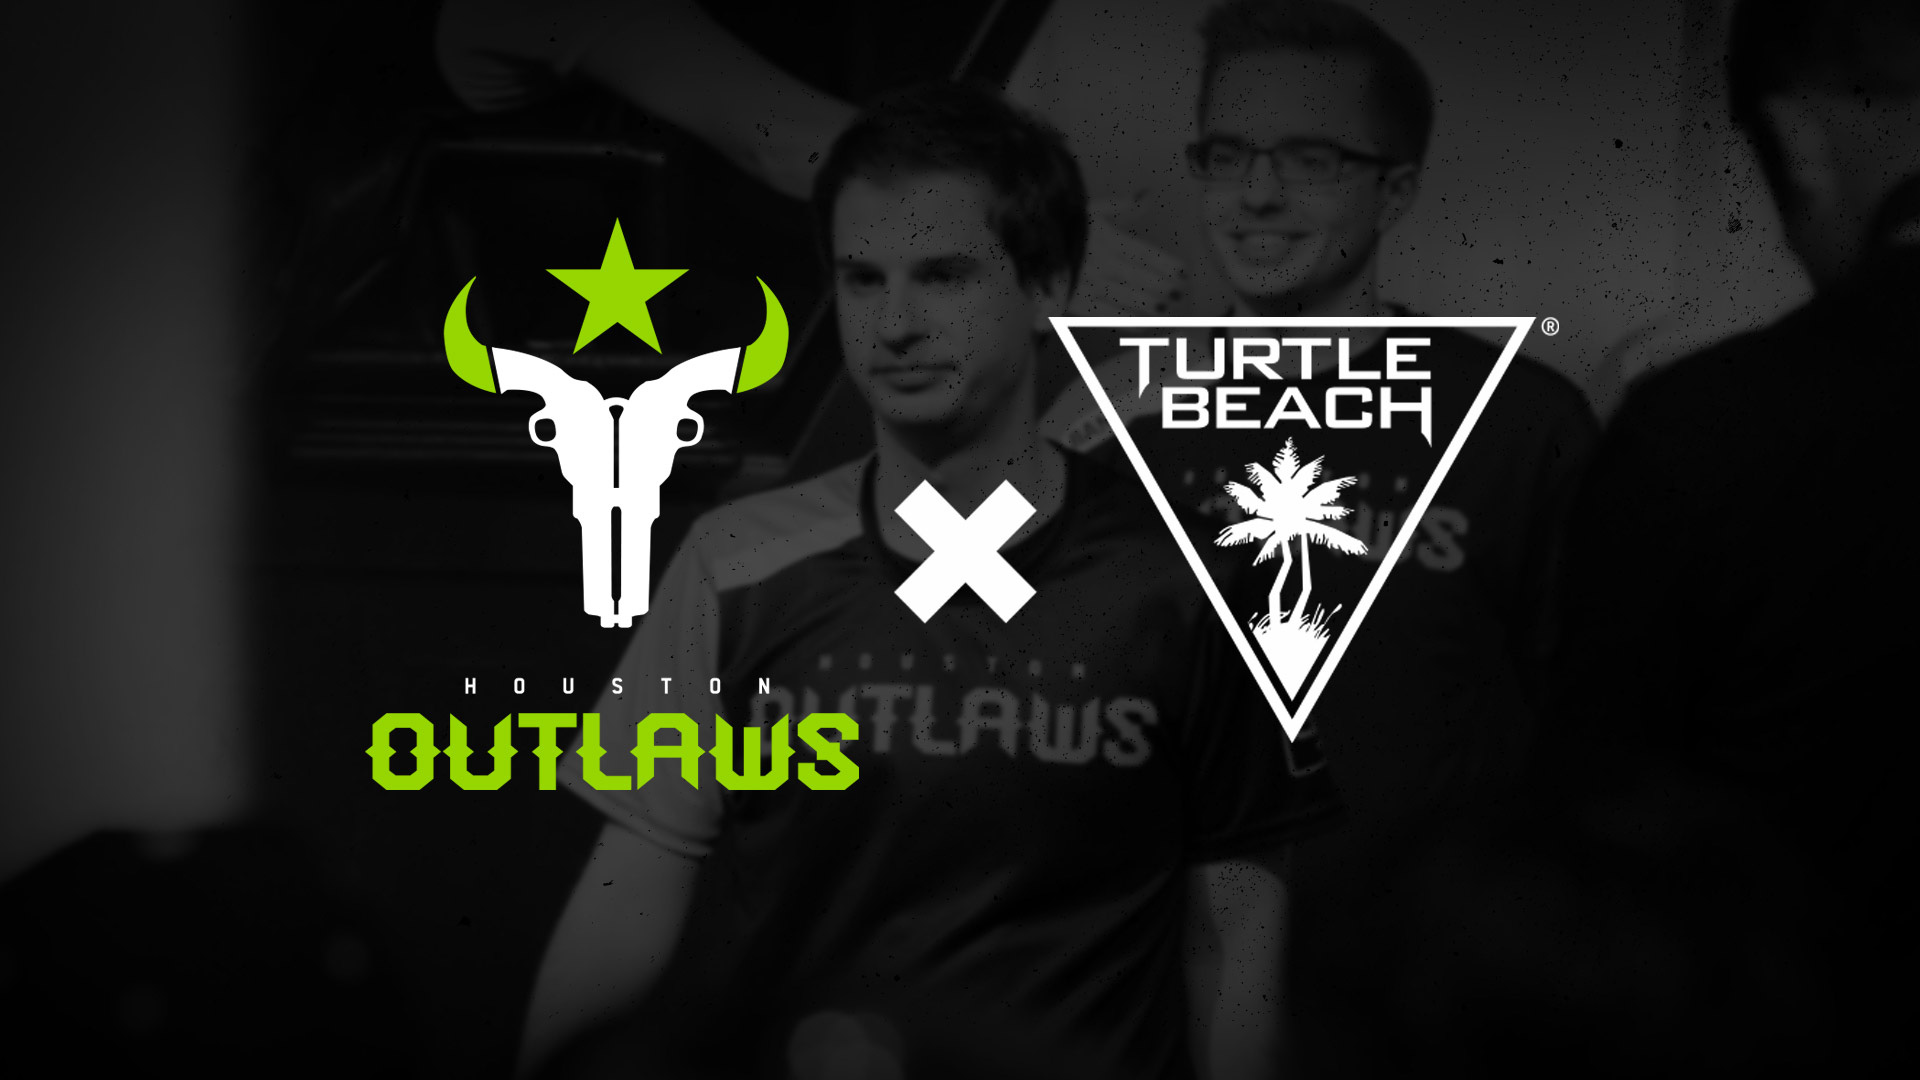 http://www.idgtv.es/archivos/201805/turtle-beach-esports-houston-outlaws-img1.jpg